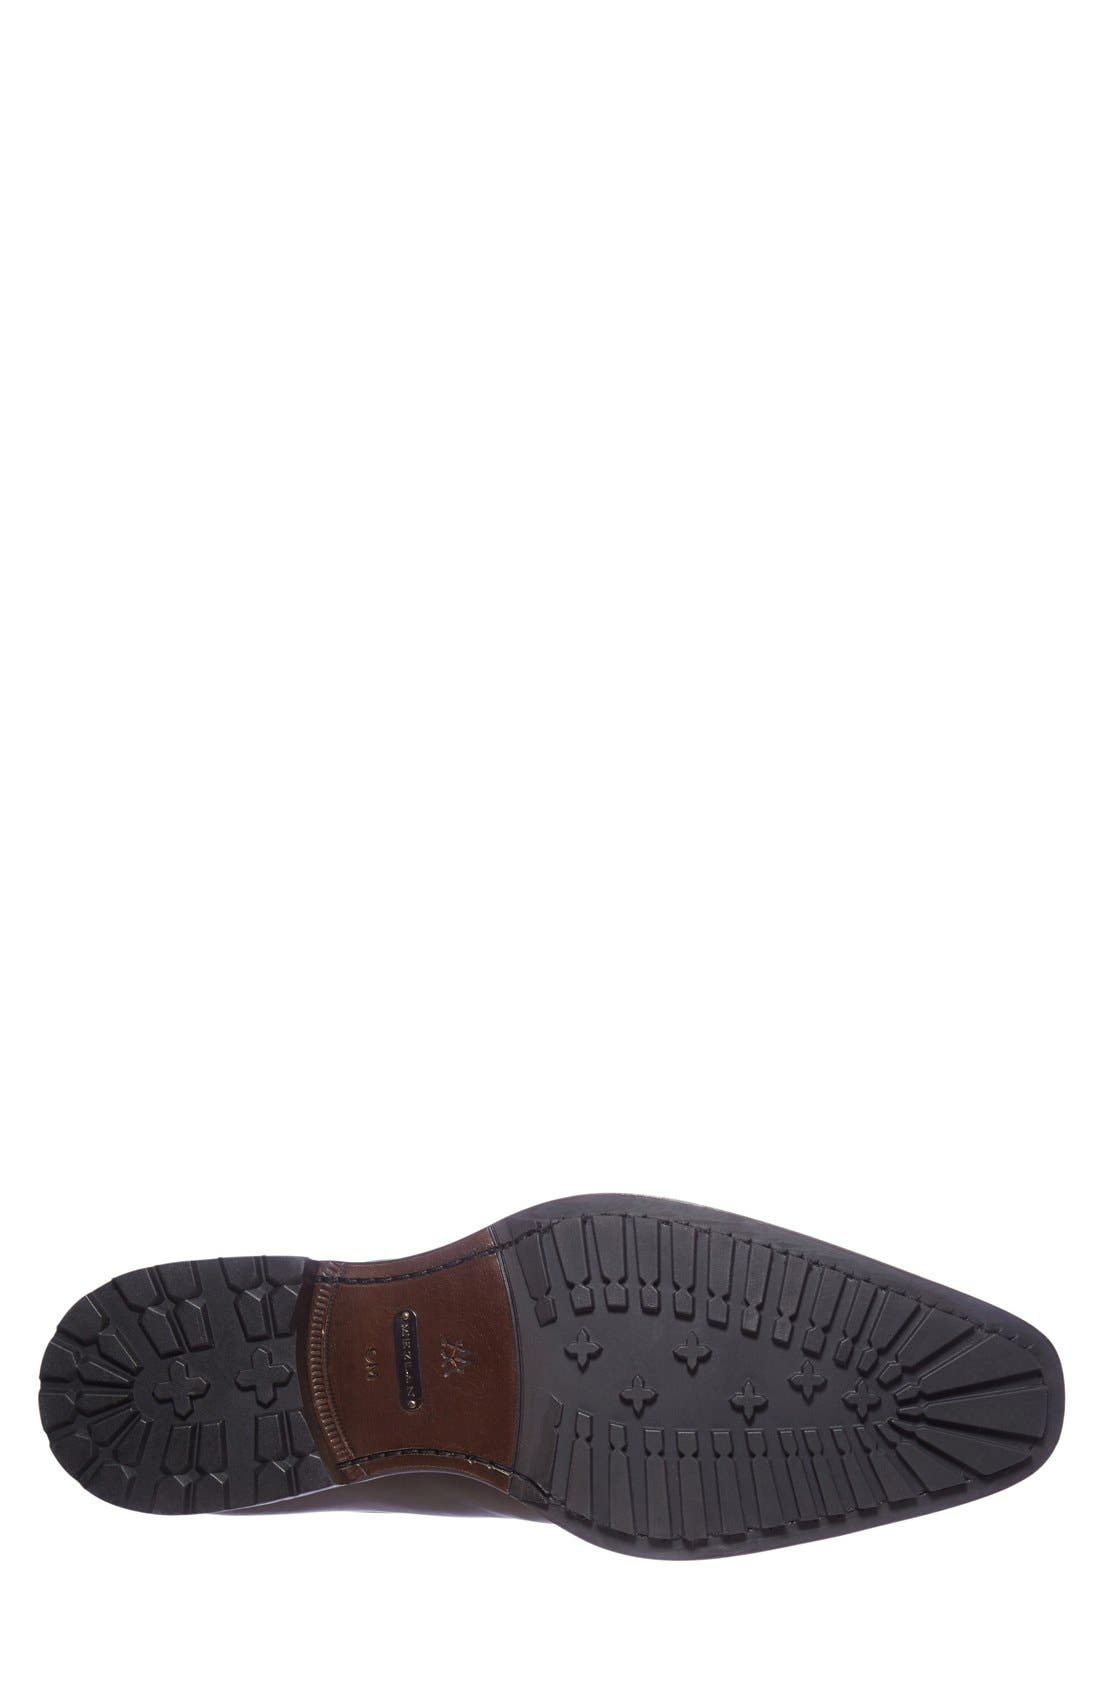 'Luzern' Genuine Shearling Boot,                             Alternate thumbnail 3, color,